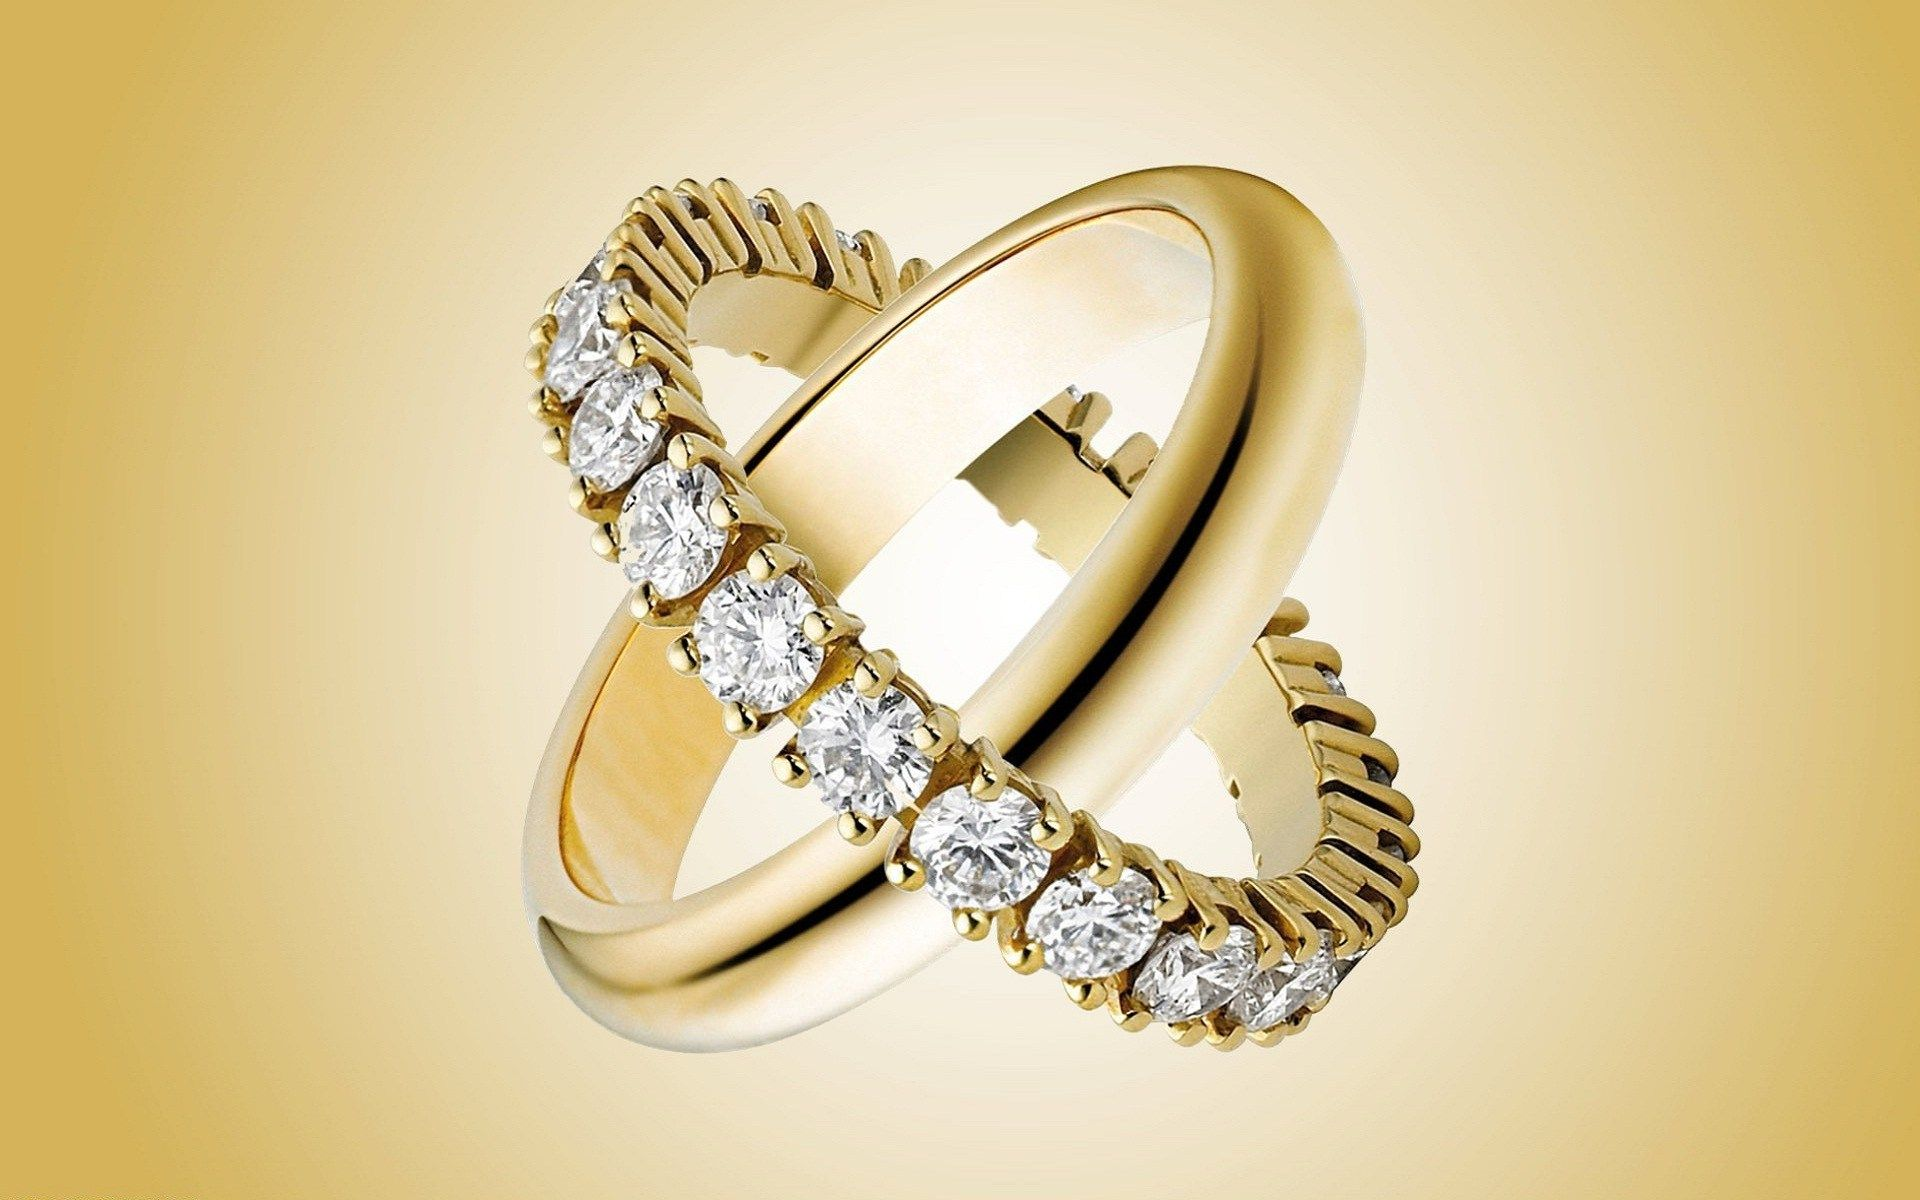 Buy Diamond Rings Online and select a perfect gift for